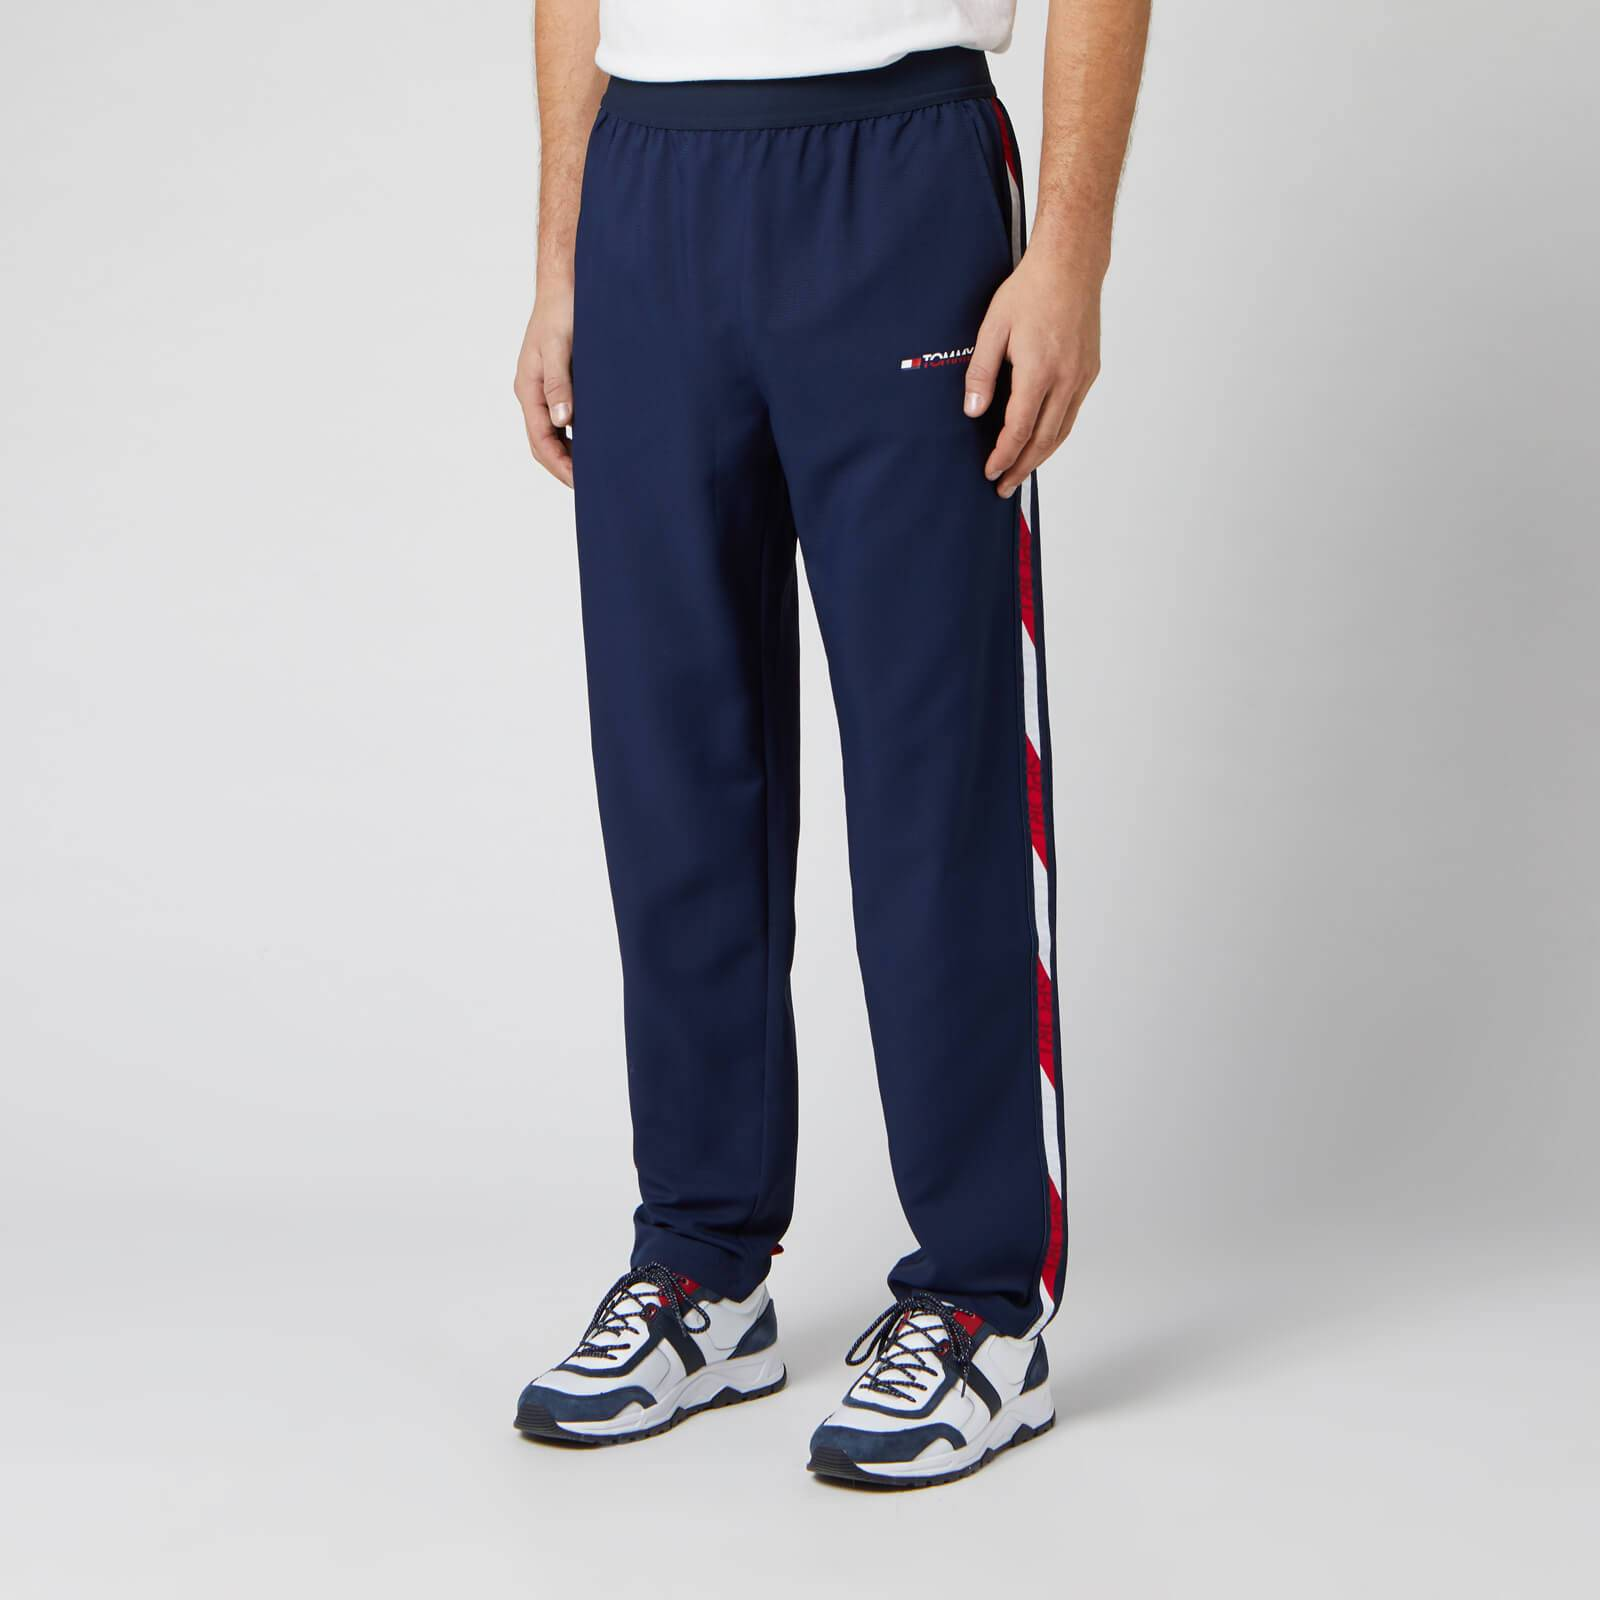 Tommy Sport Men's Woven Tape Pants - Sport Navy - S